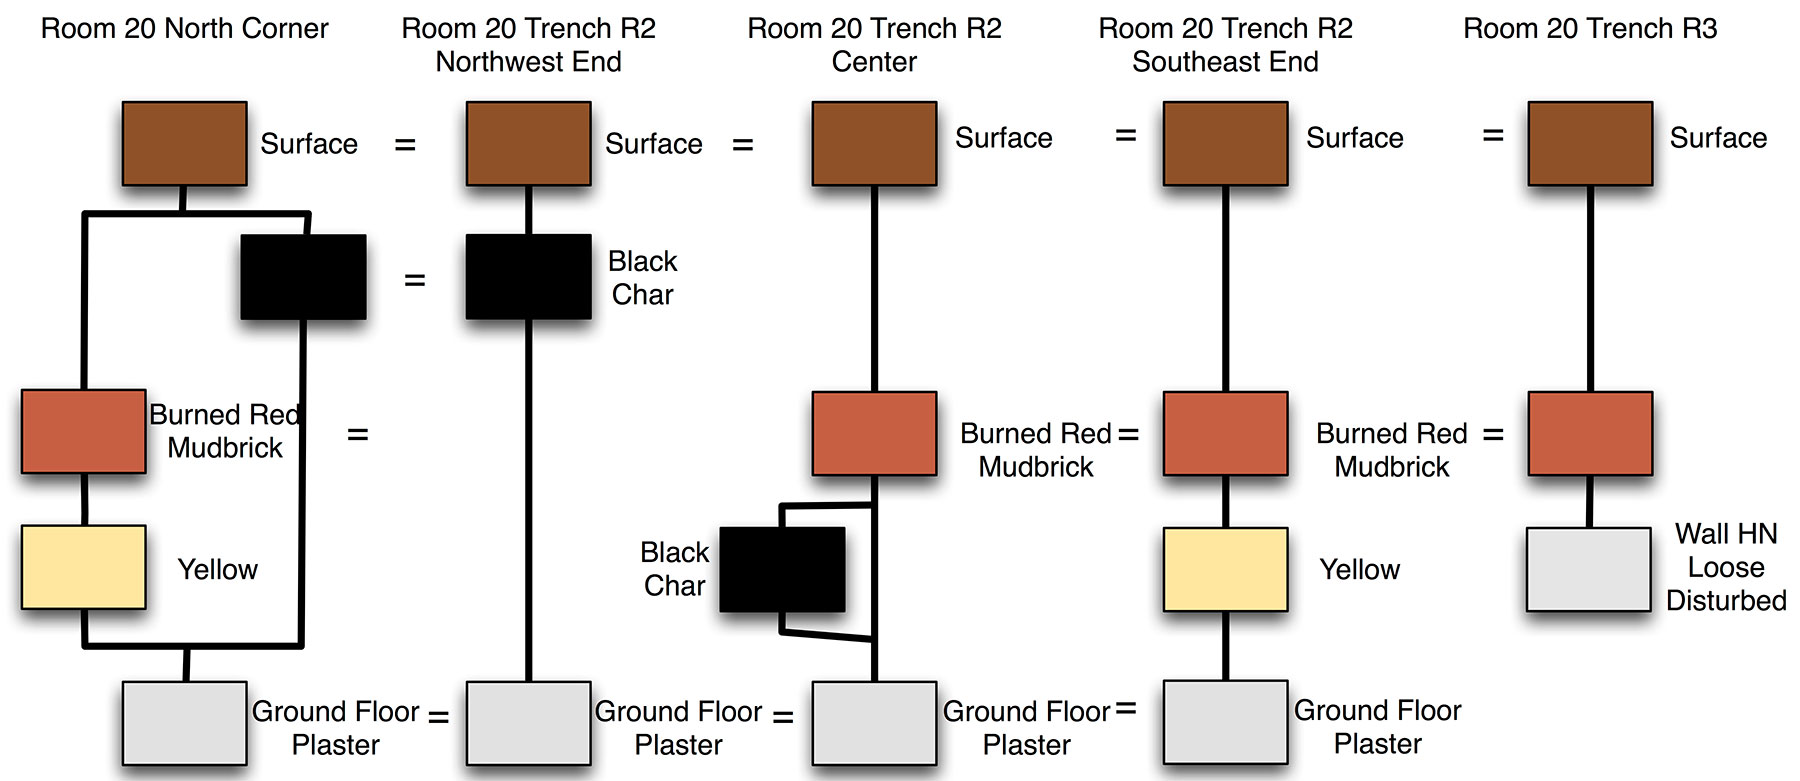 Fig. 3. Room 20 trench R2 and adjoining sections, modified Harris Matrices.